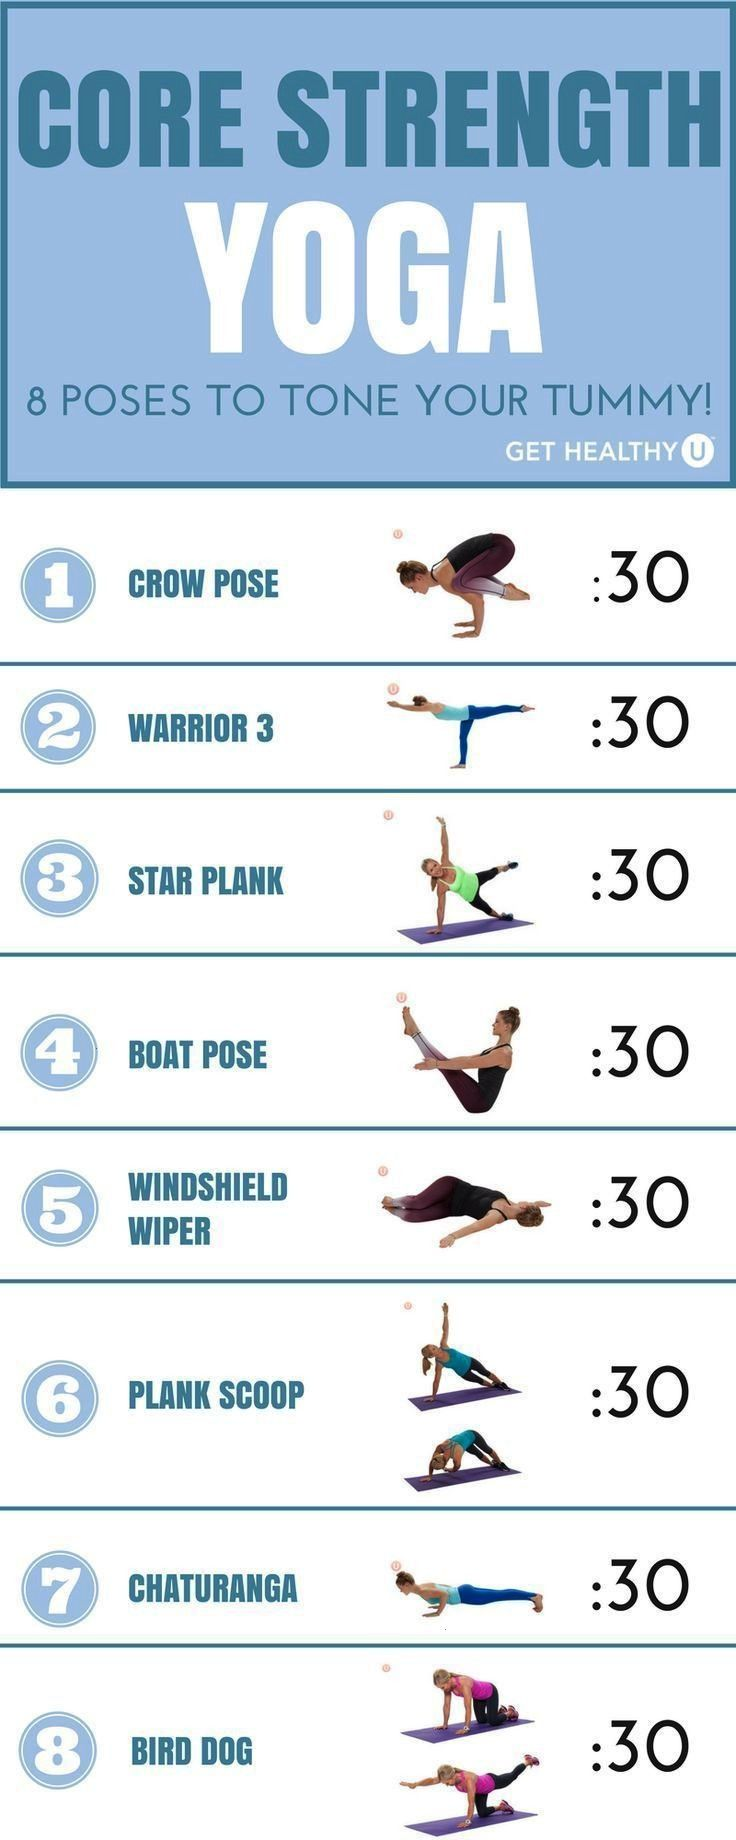 #challenging #strengthen #workout #amazing #fitness #poses #these #calm #your #mind #help #also #yog...